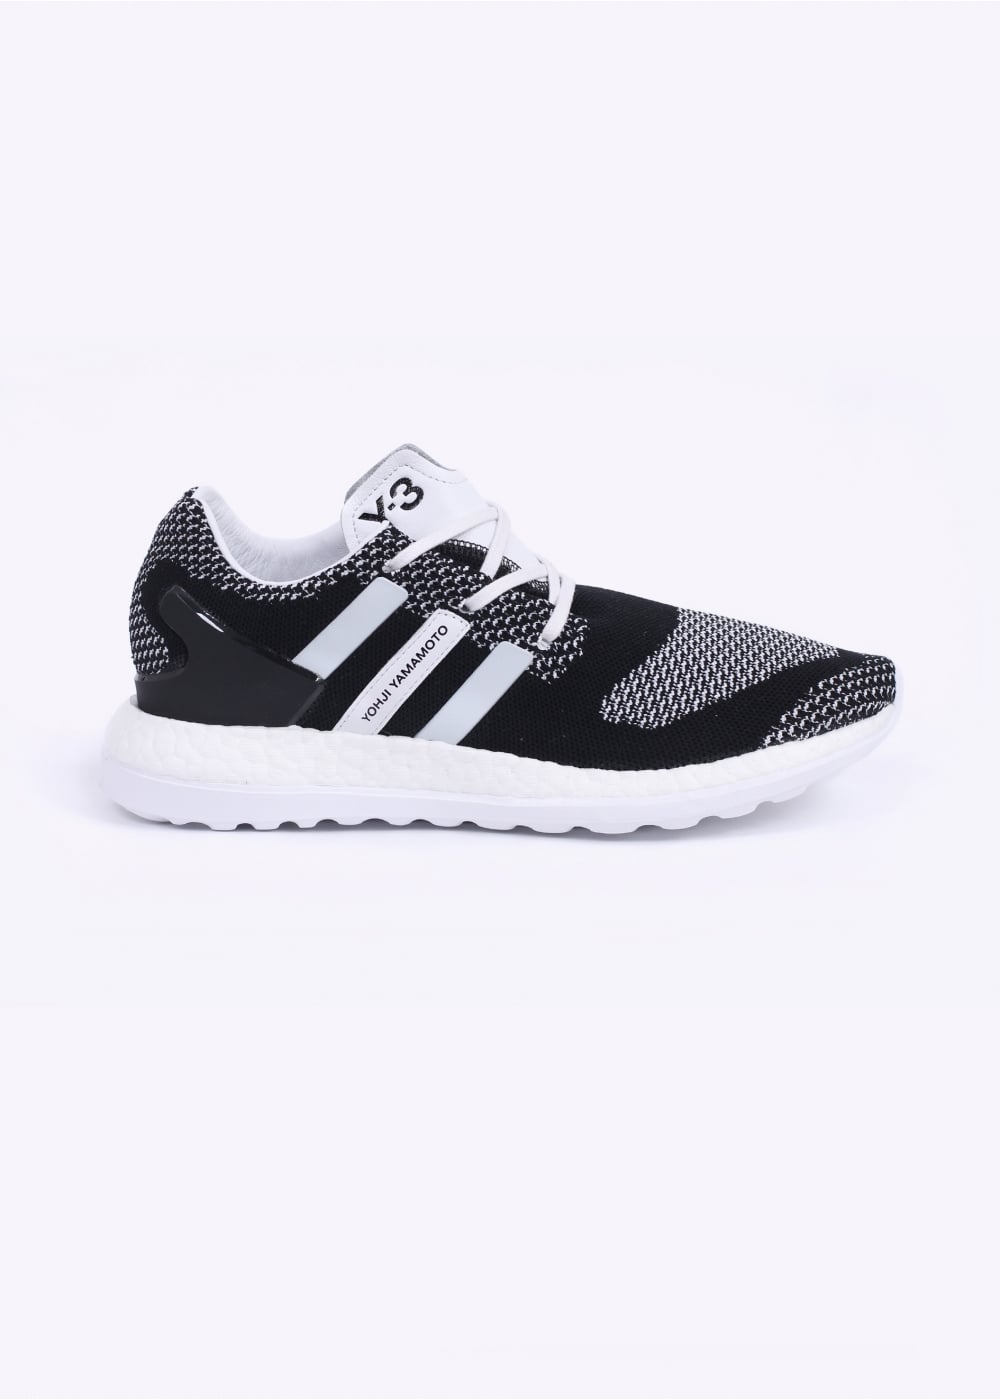 04f95363a adidas Y-3 Pure Boost ZG Knit Trainers - Black   White